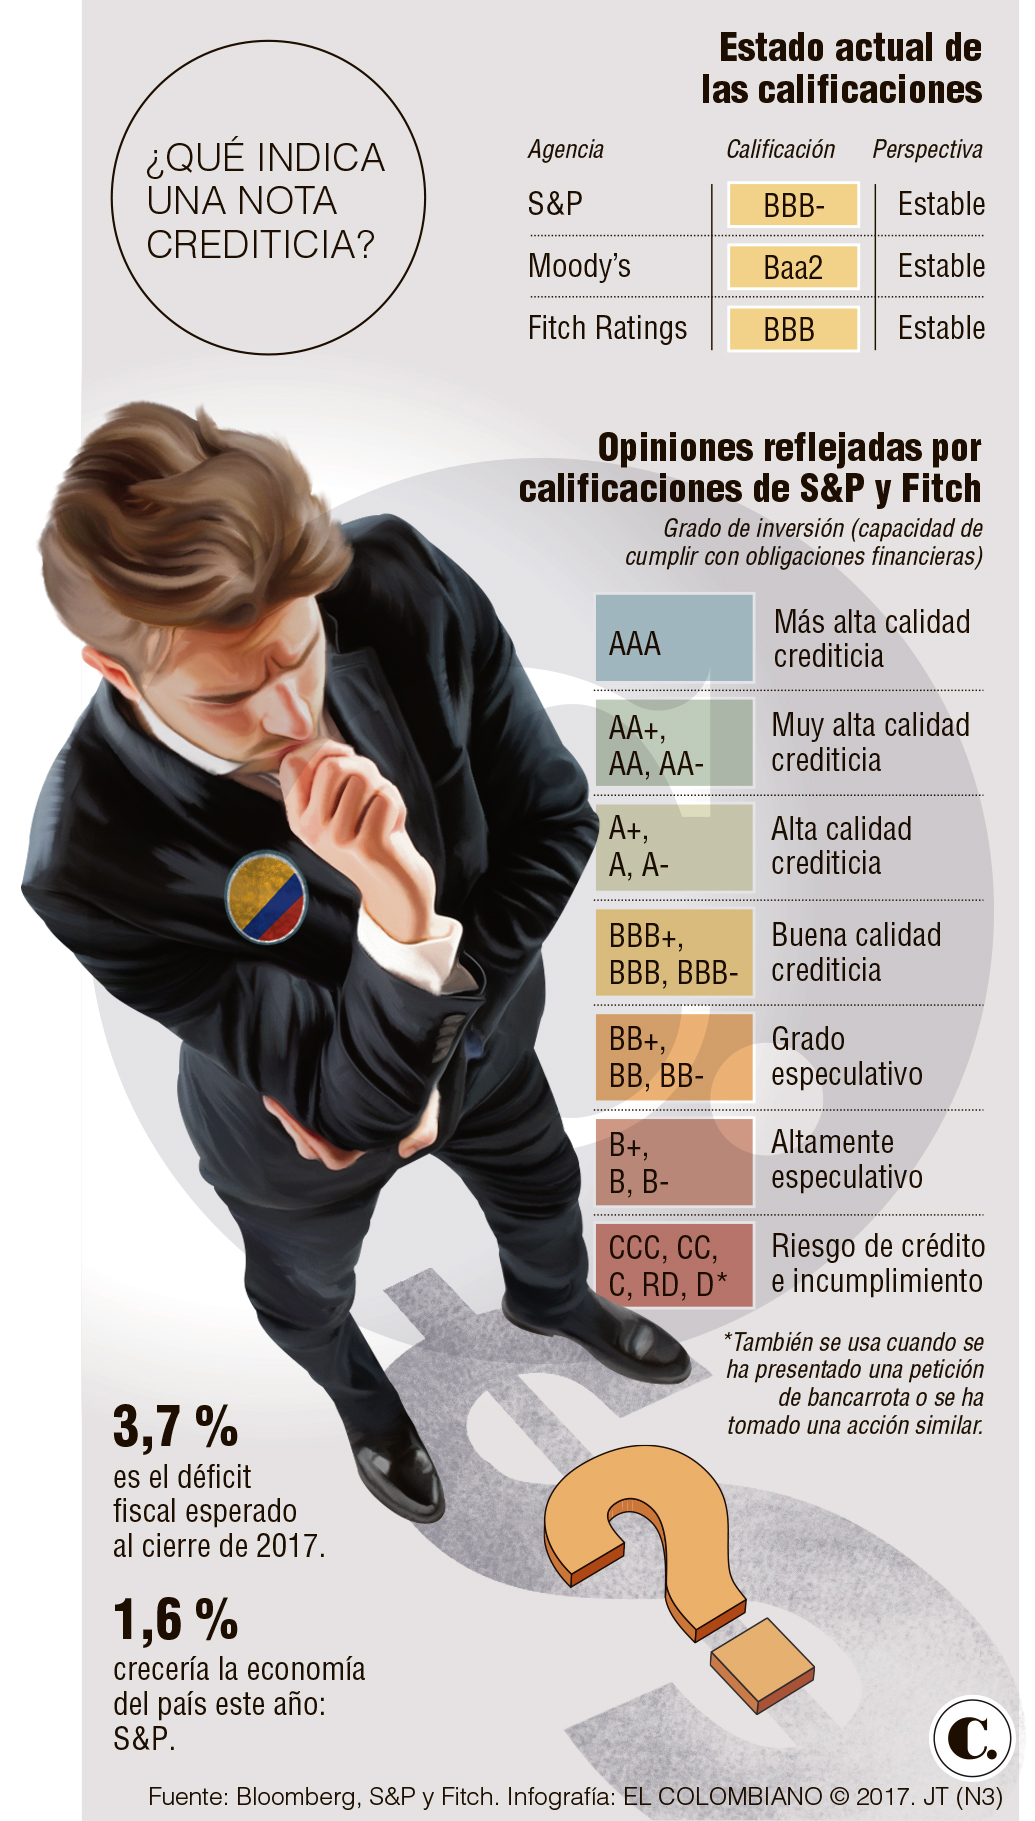 Implicaciones de la revisió de la calificación crediticia de Standard & Poor's